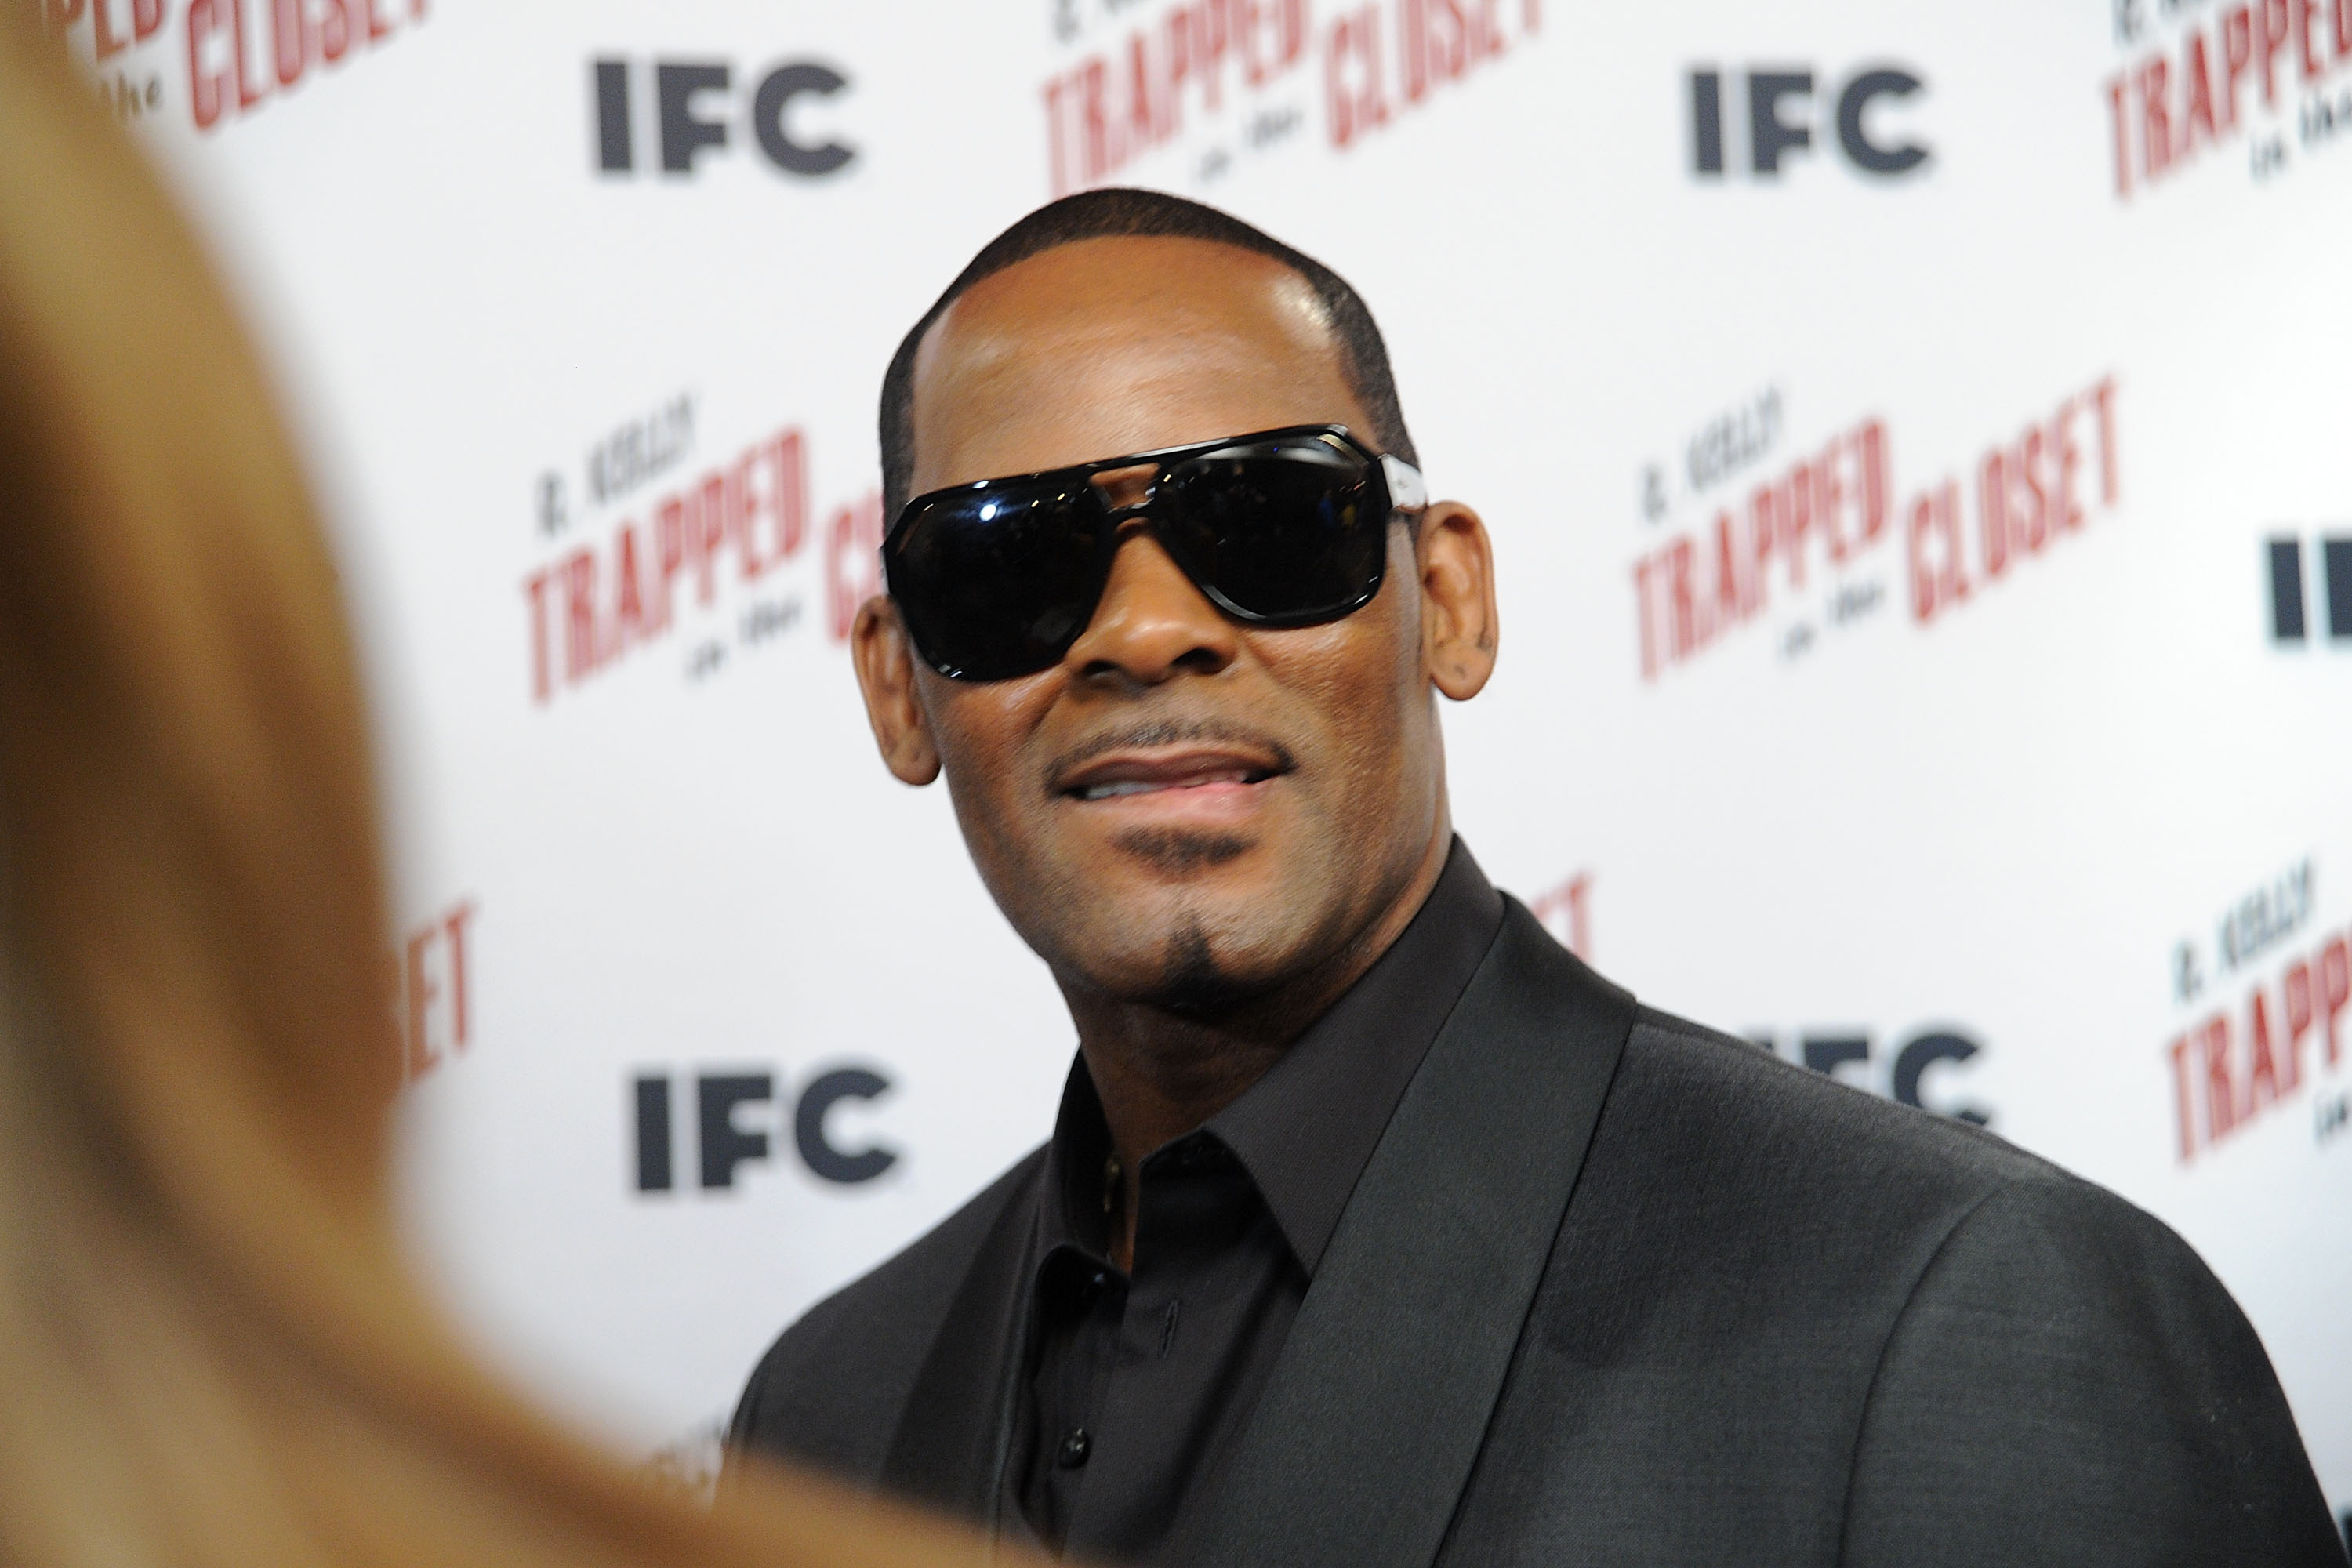 The first male accuser took the stand in the R. Kelly trial and testified that the singer sexually abused him when he was 17